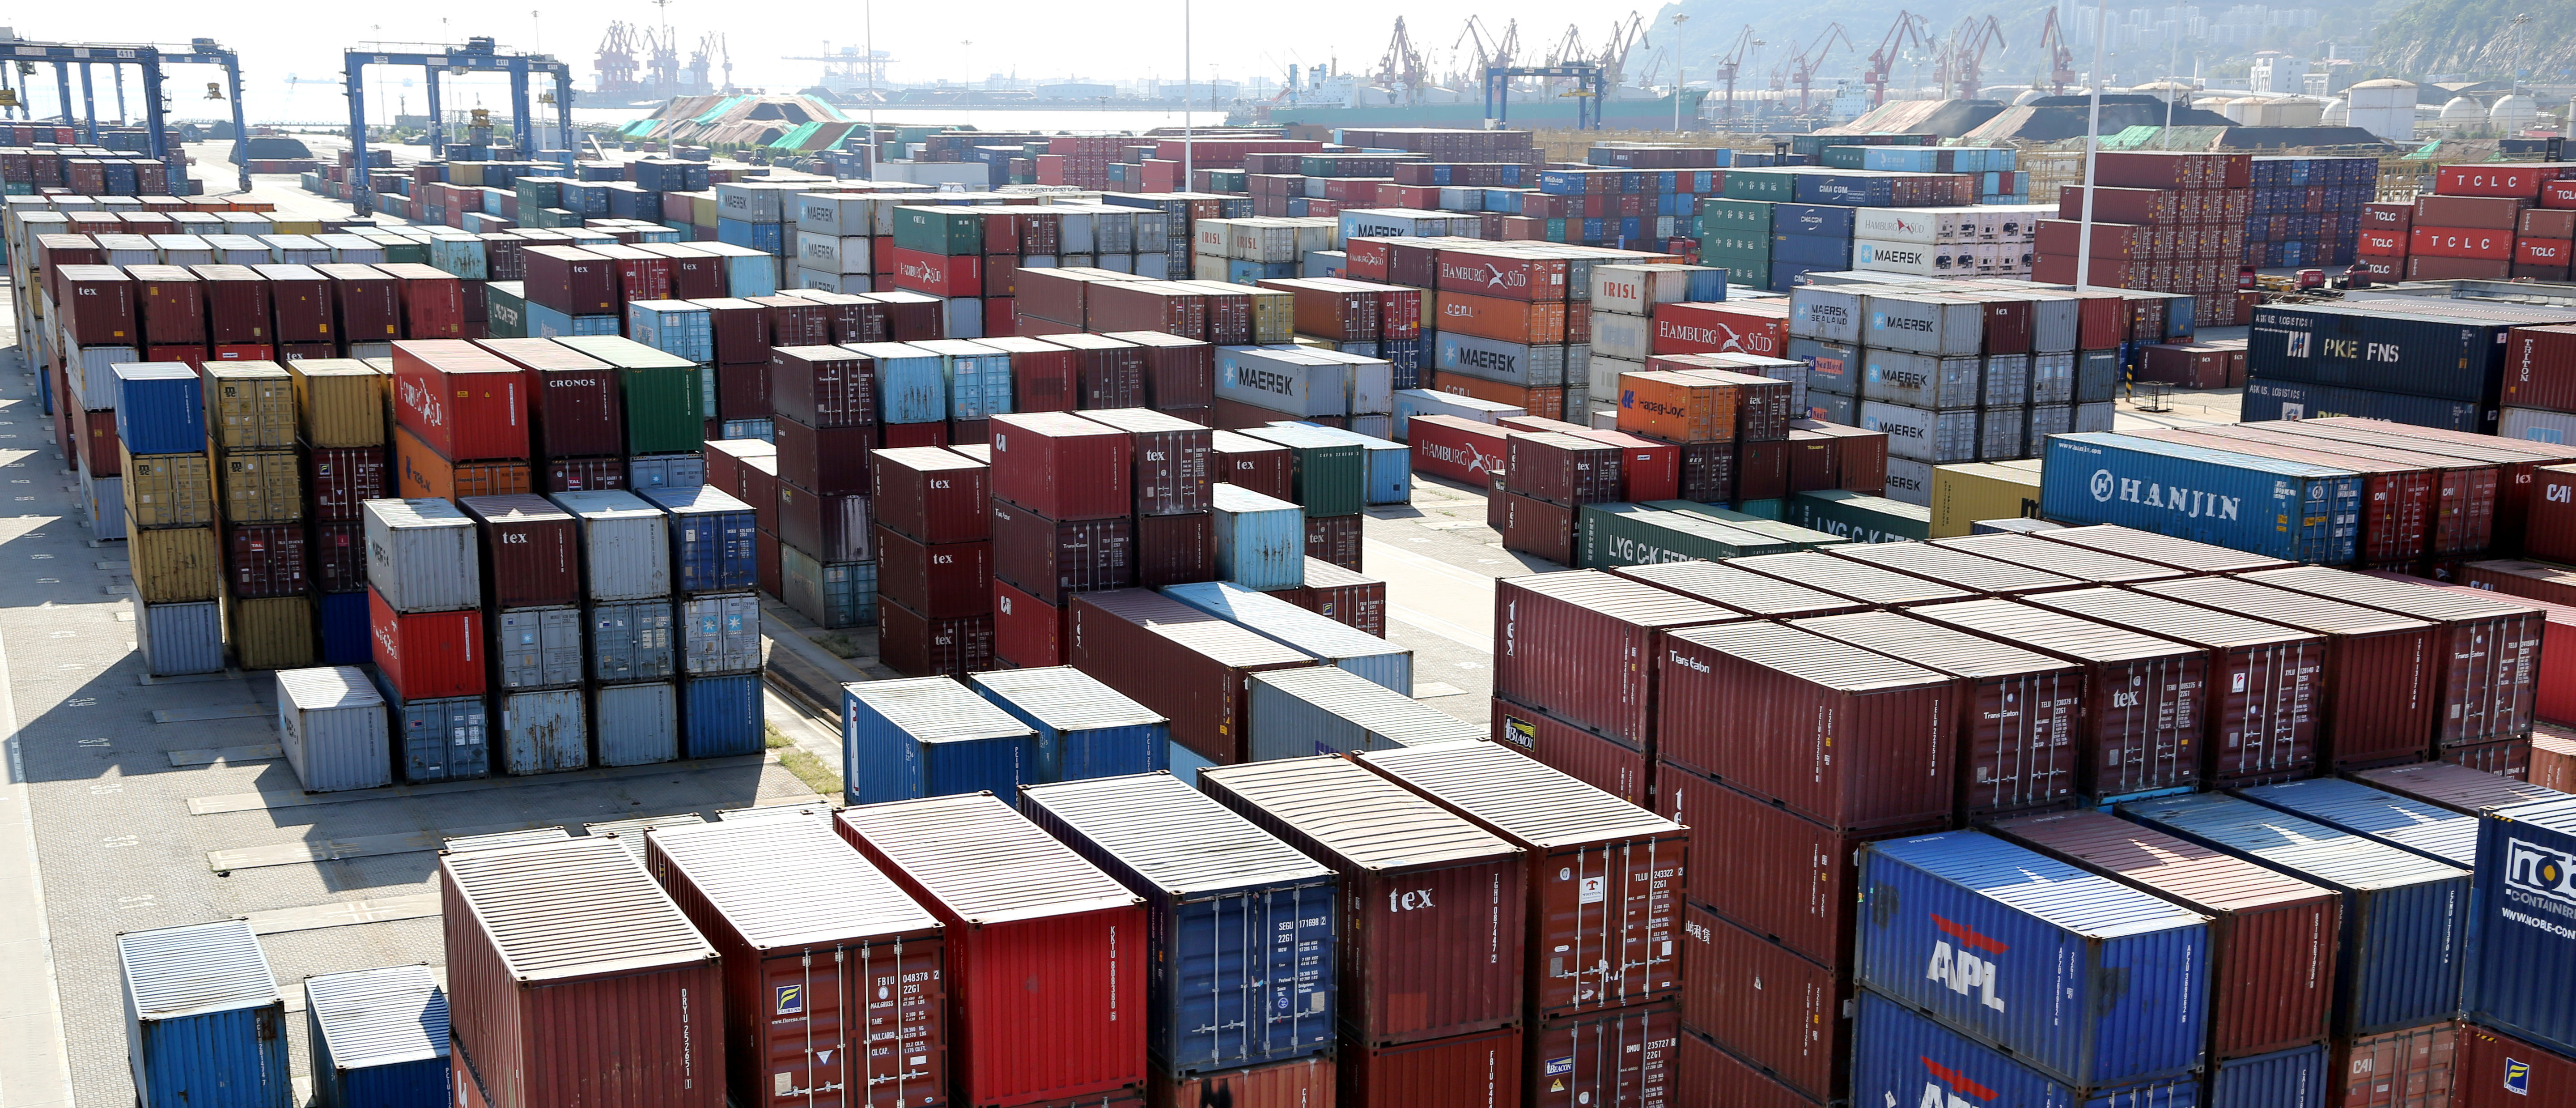 Shipping containers are seen at a port in Lianyungang, Jiangsu province, China September 8, 2018. REUTERS/Stringer